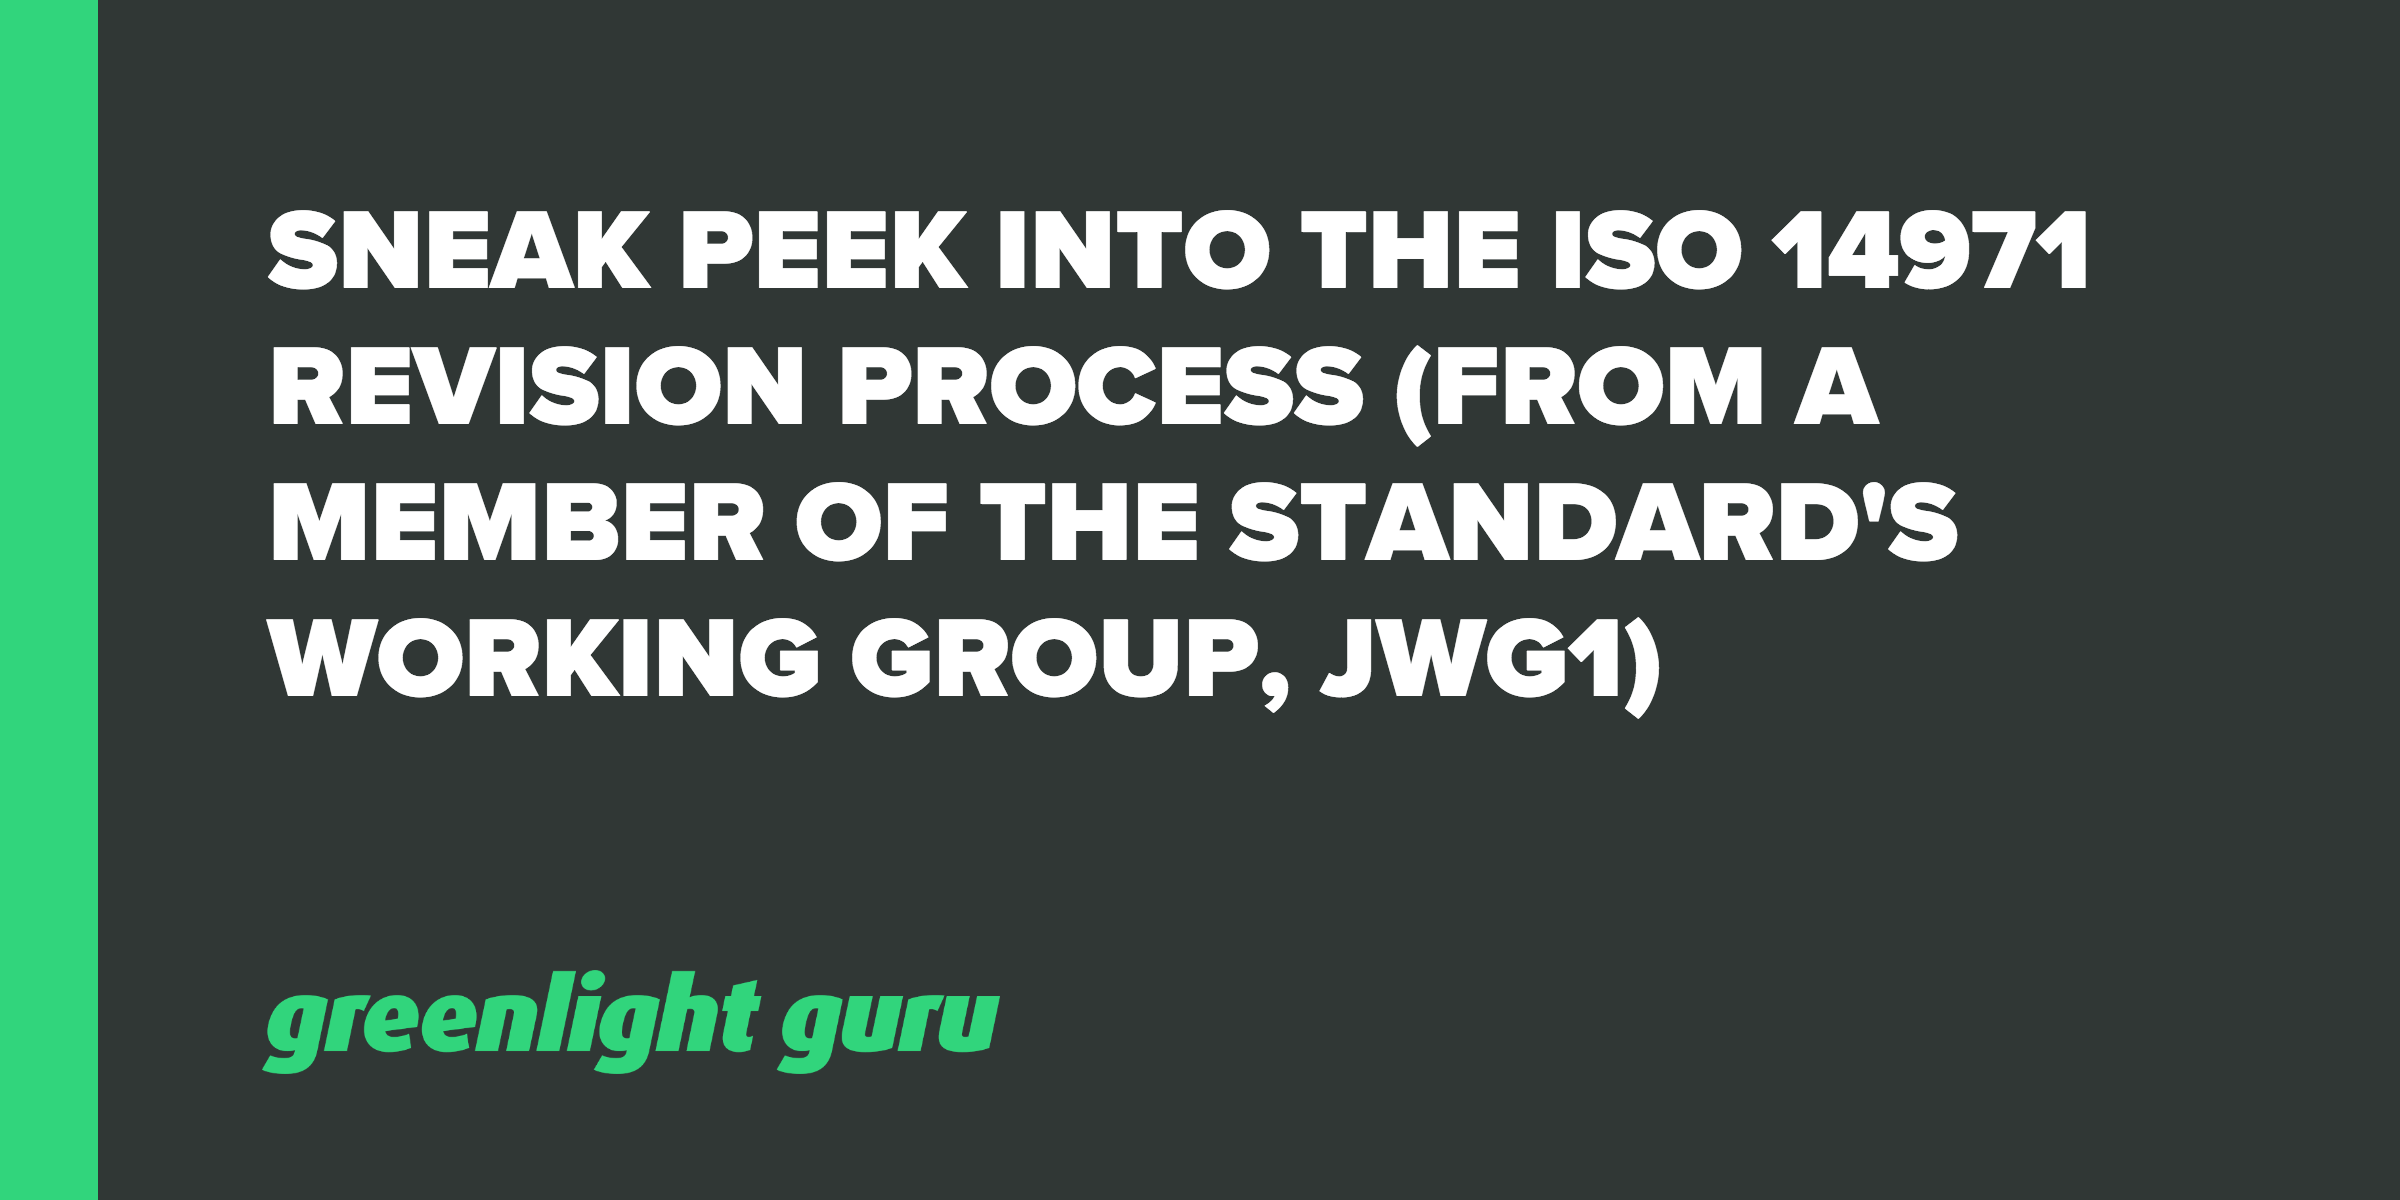 Sneak Peek Into the ISO 14971 Revision Process (From a Member of the Standard's Working Group, JWG1) - Featured Image